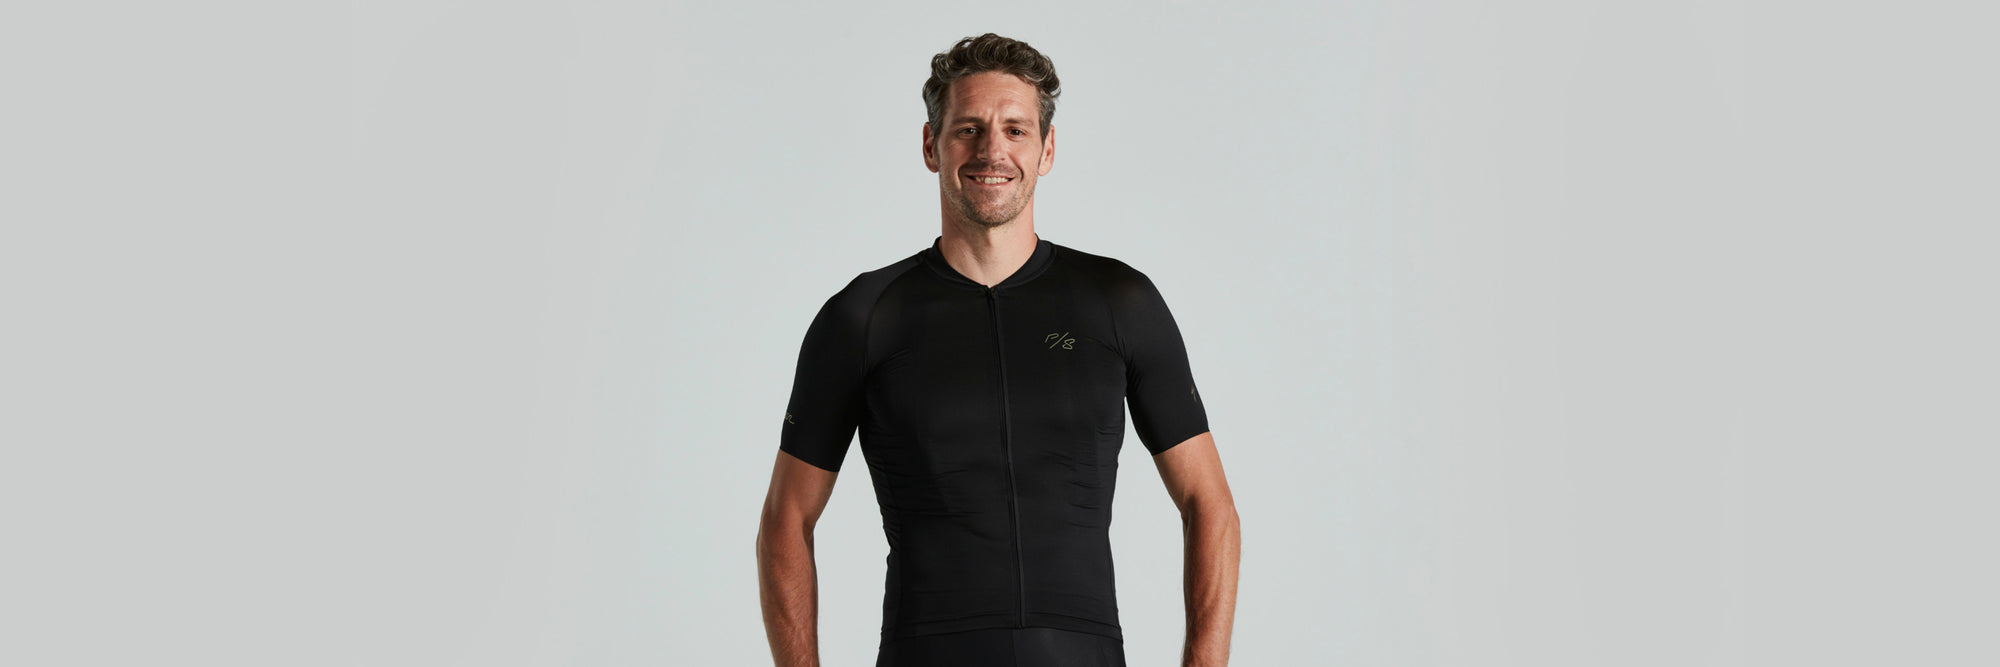 Men's SL Air Short Sleeve Jersey - Sagan Collection: Deconstructivism